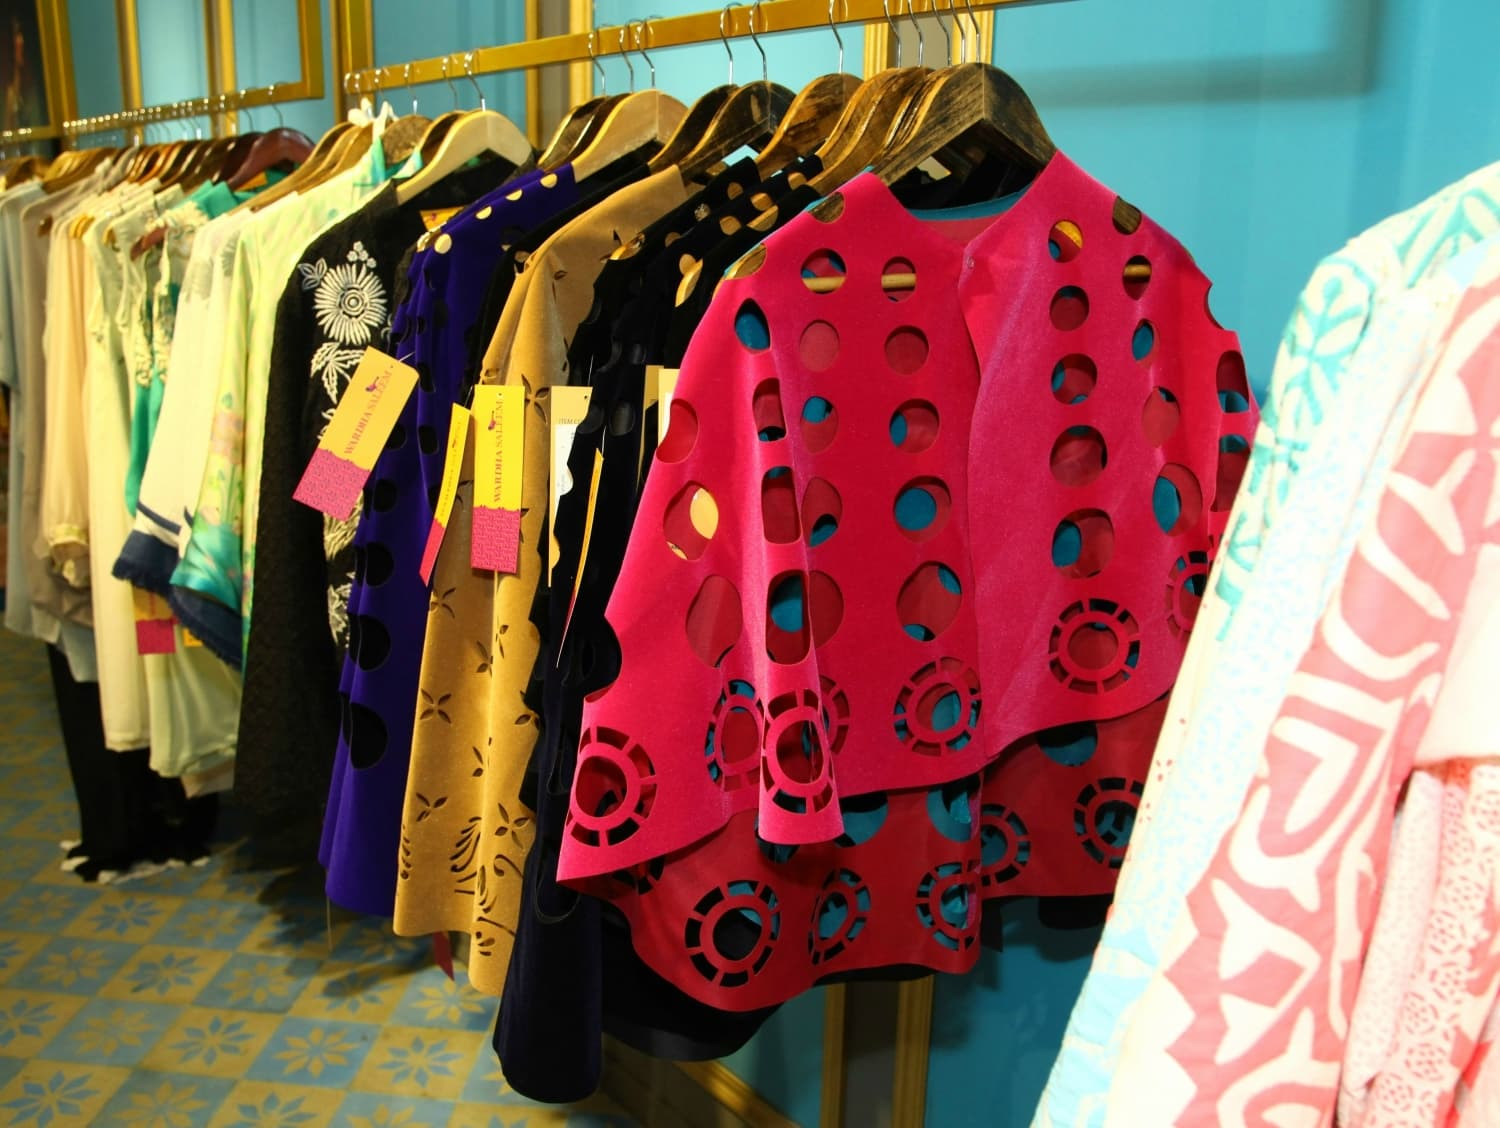 Some of the best buys at the store are found in Wardha's pret line